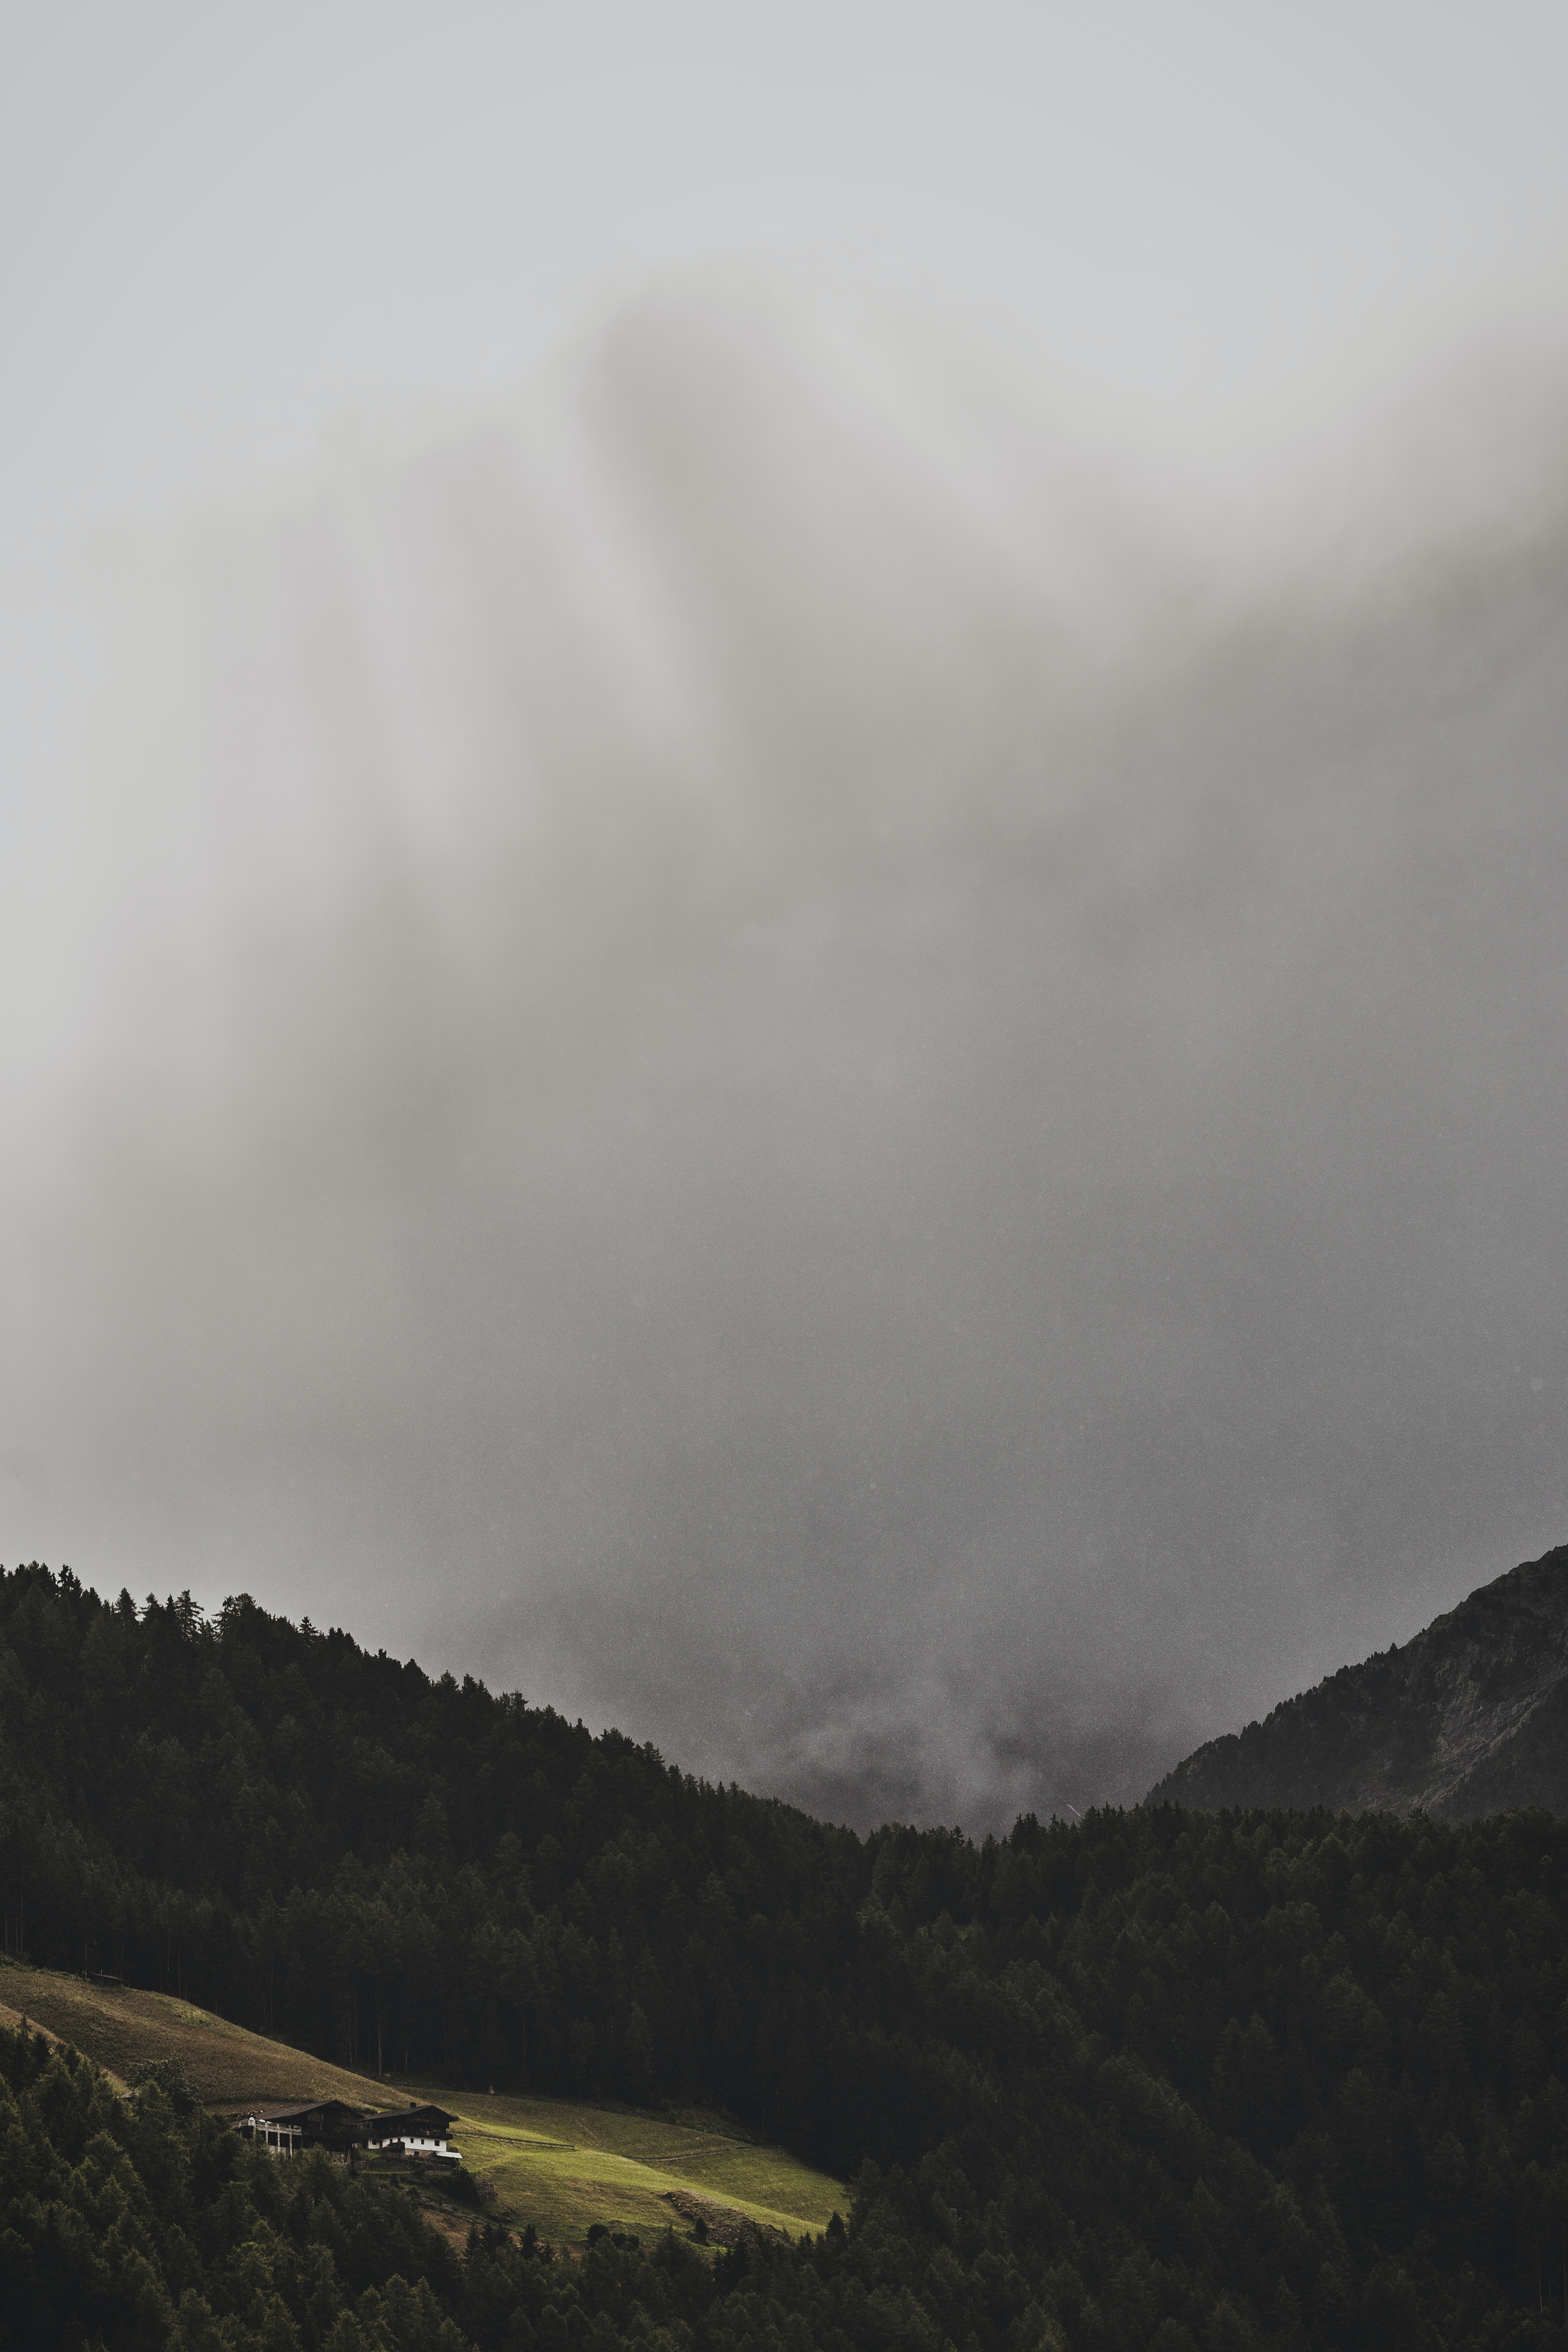 bird's eye view of forest mountain with fog